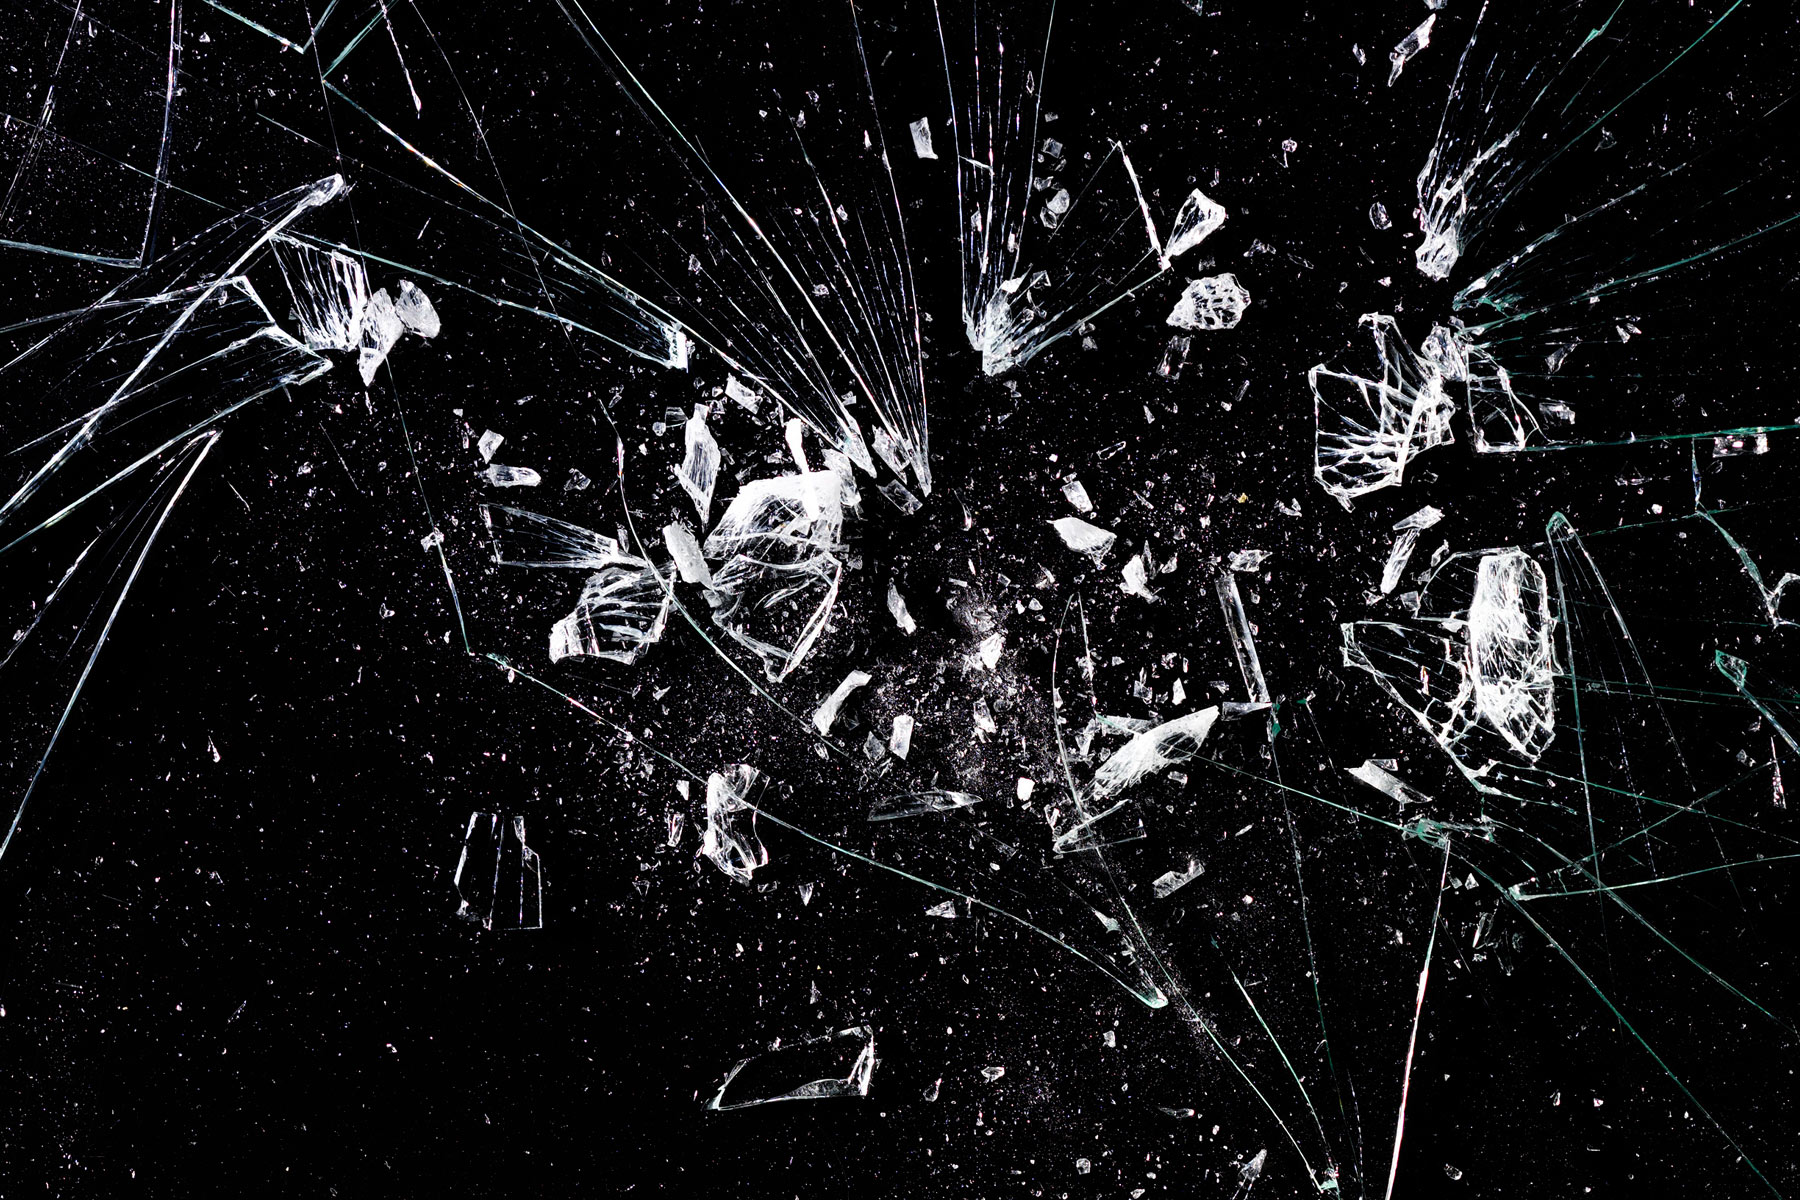 Broken_glass_4